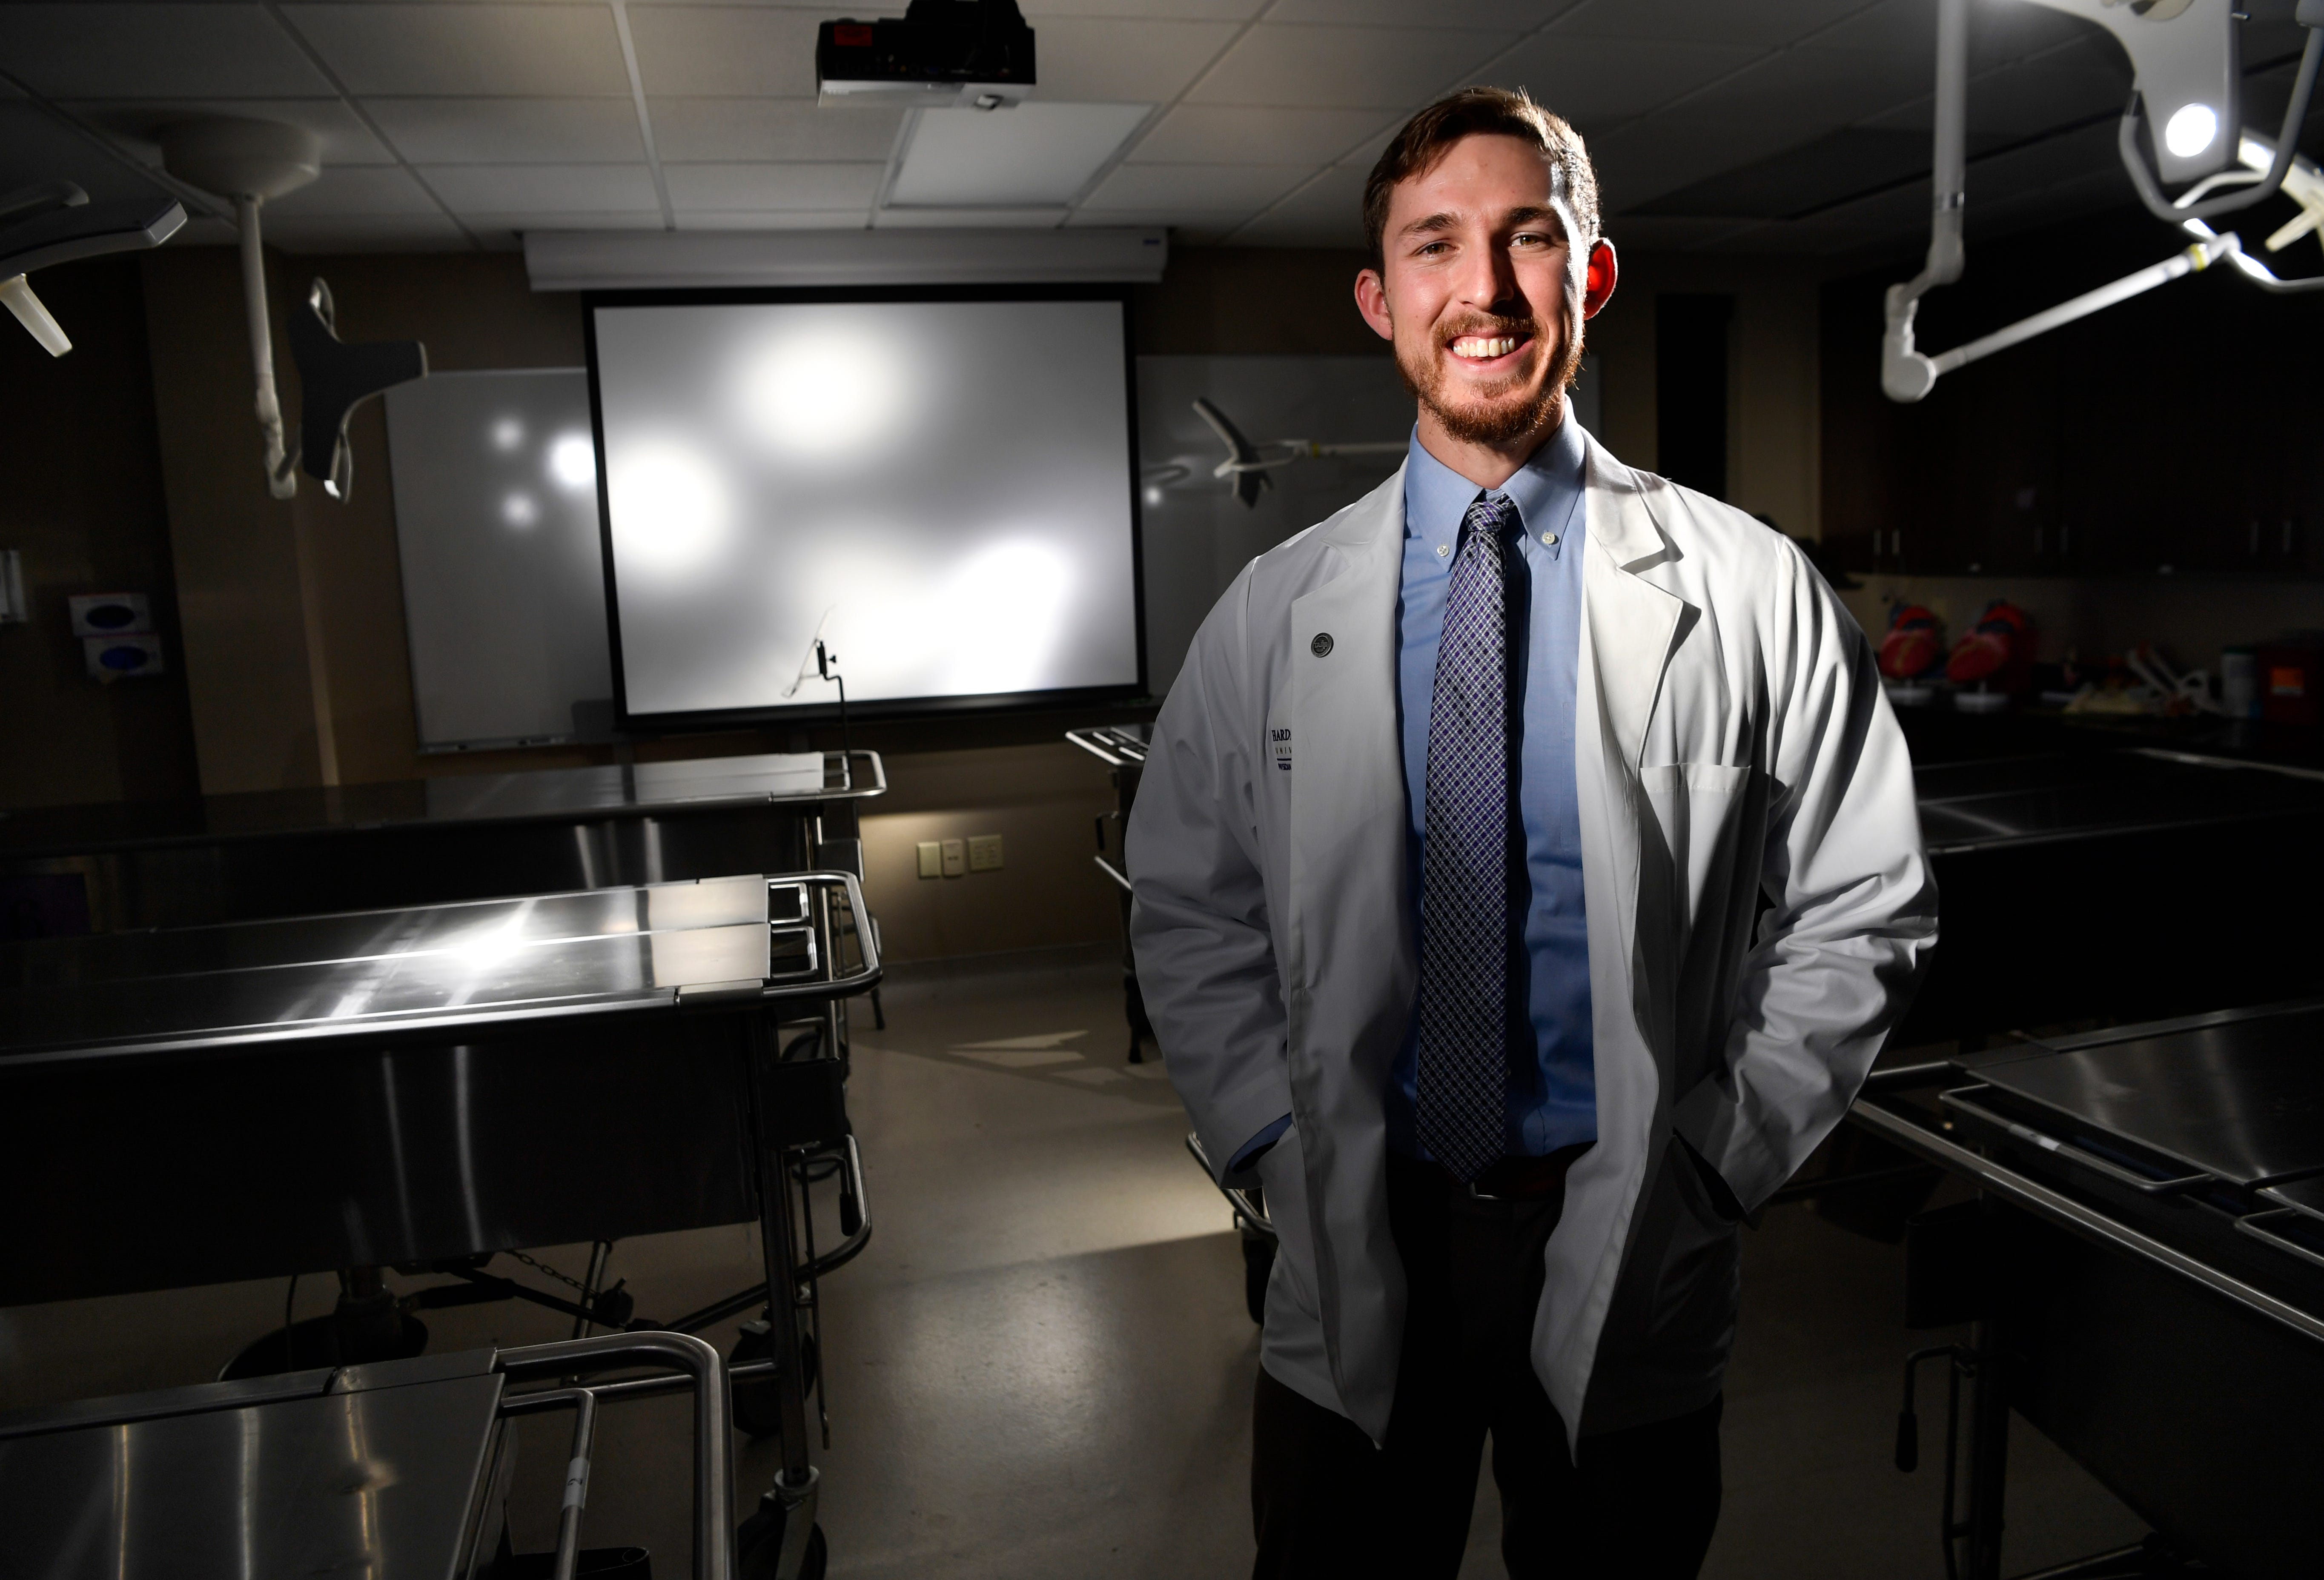 Darby Thornton is lit by the examination lights in the physician assistant program's anatomy lab Wednesday at Hardin-Simmons University.